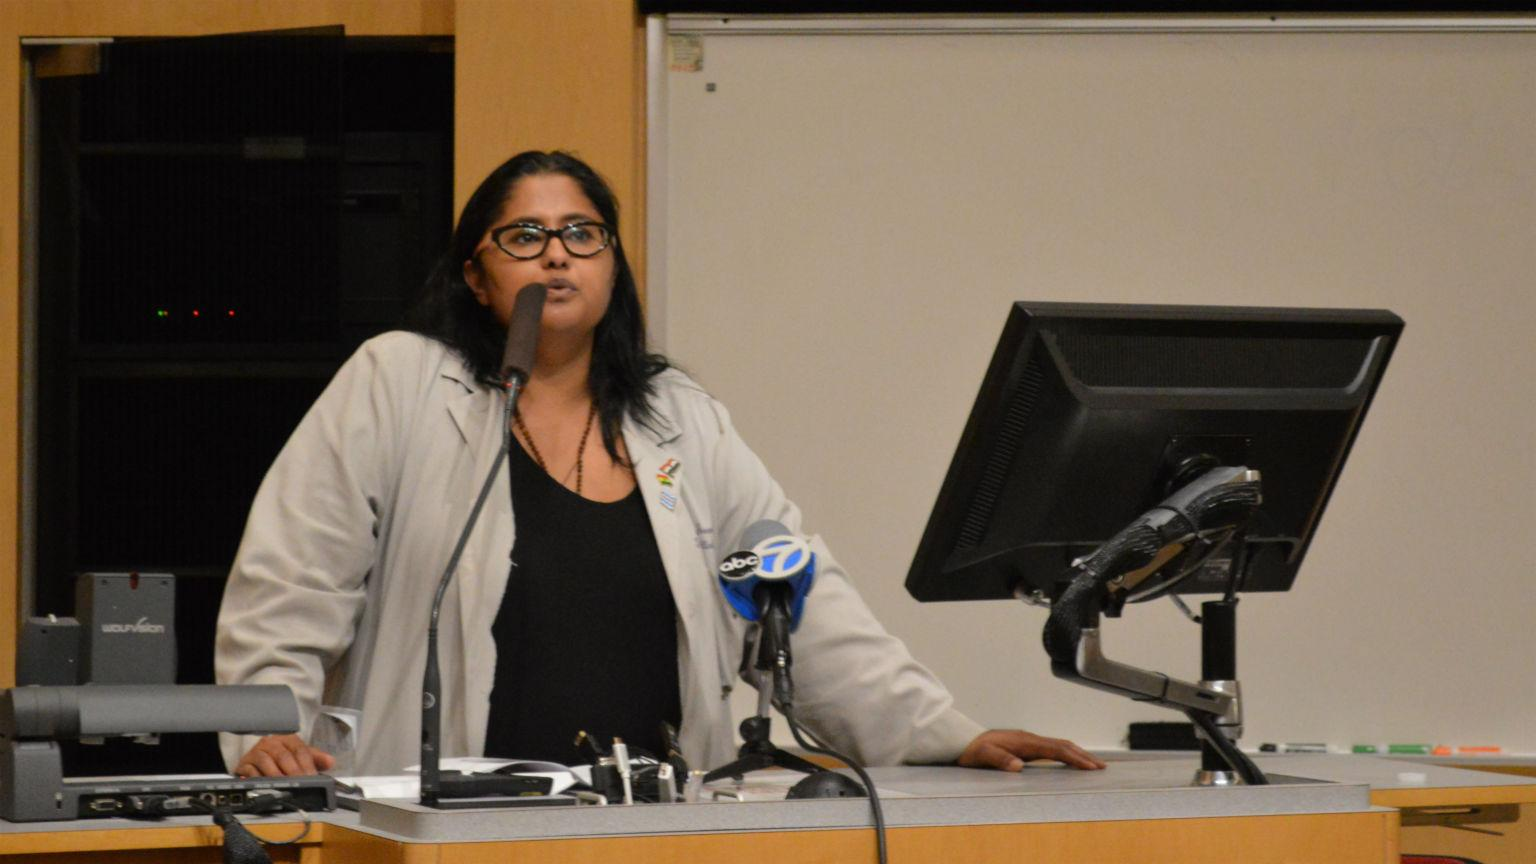 Dr. Mamta Swaroop talks Monday, Sept. 17, 2018 about her work teaching community members how to treat gunshot victims. (Kristen Thometz / Chicago Tonight)